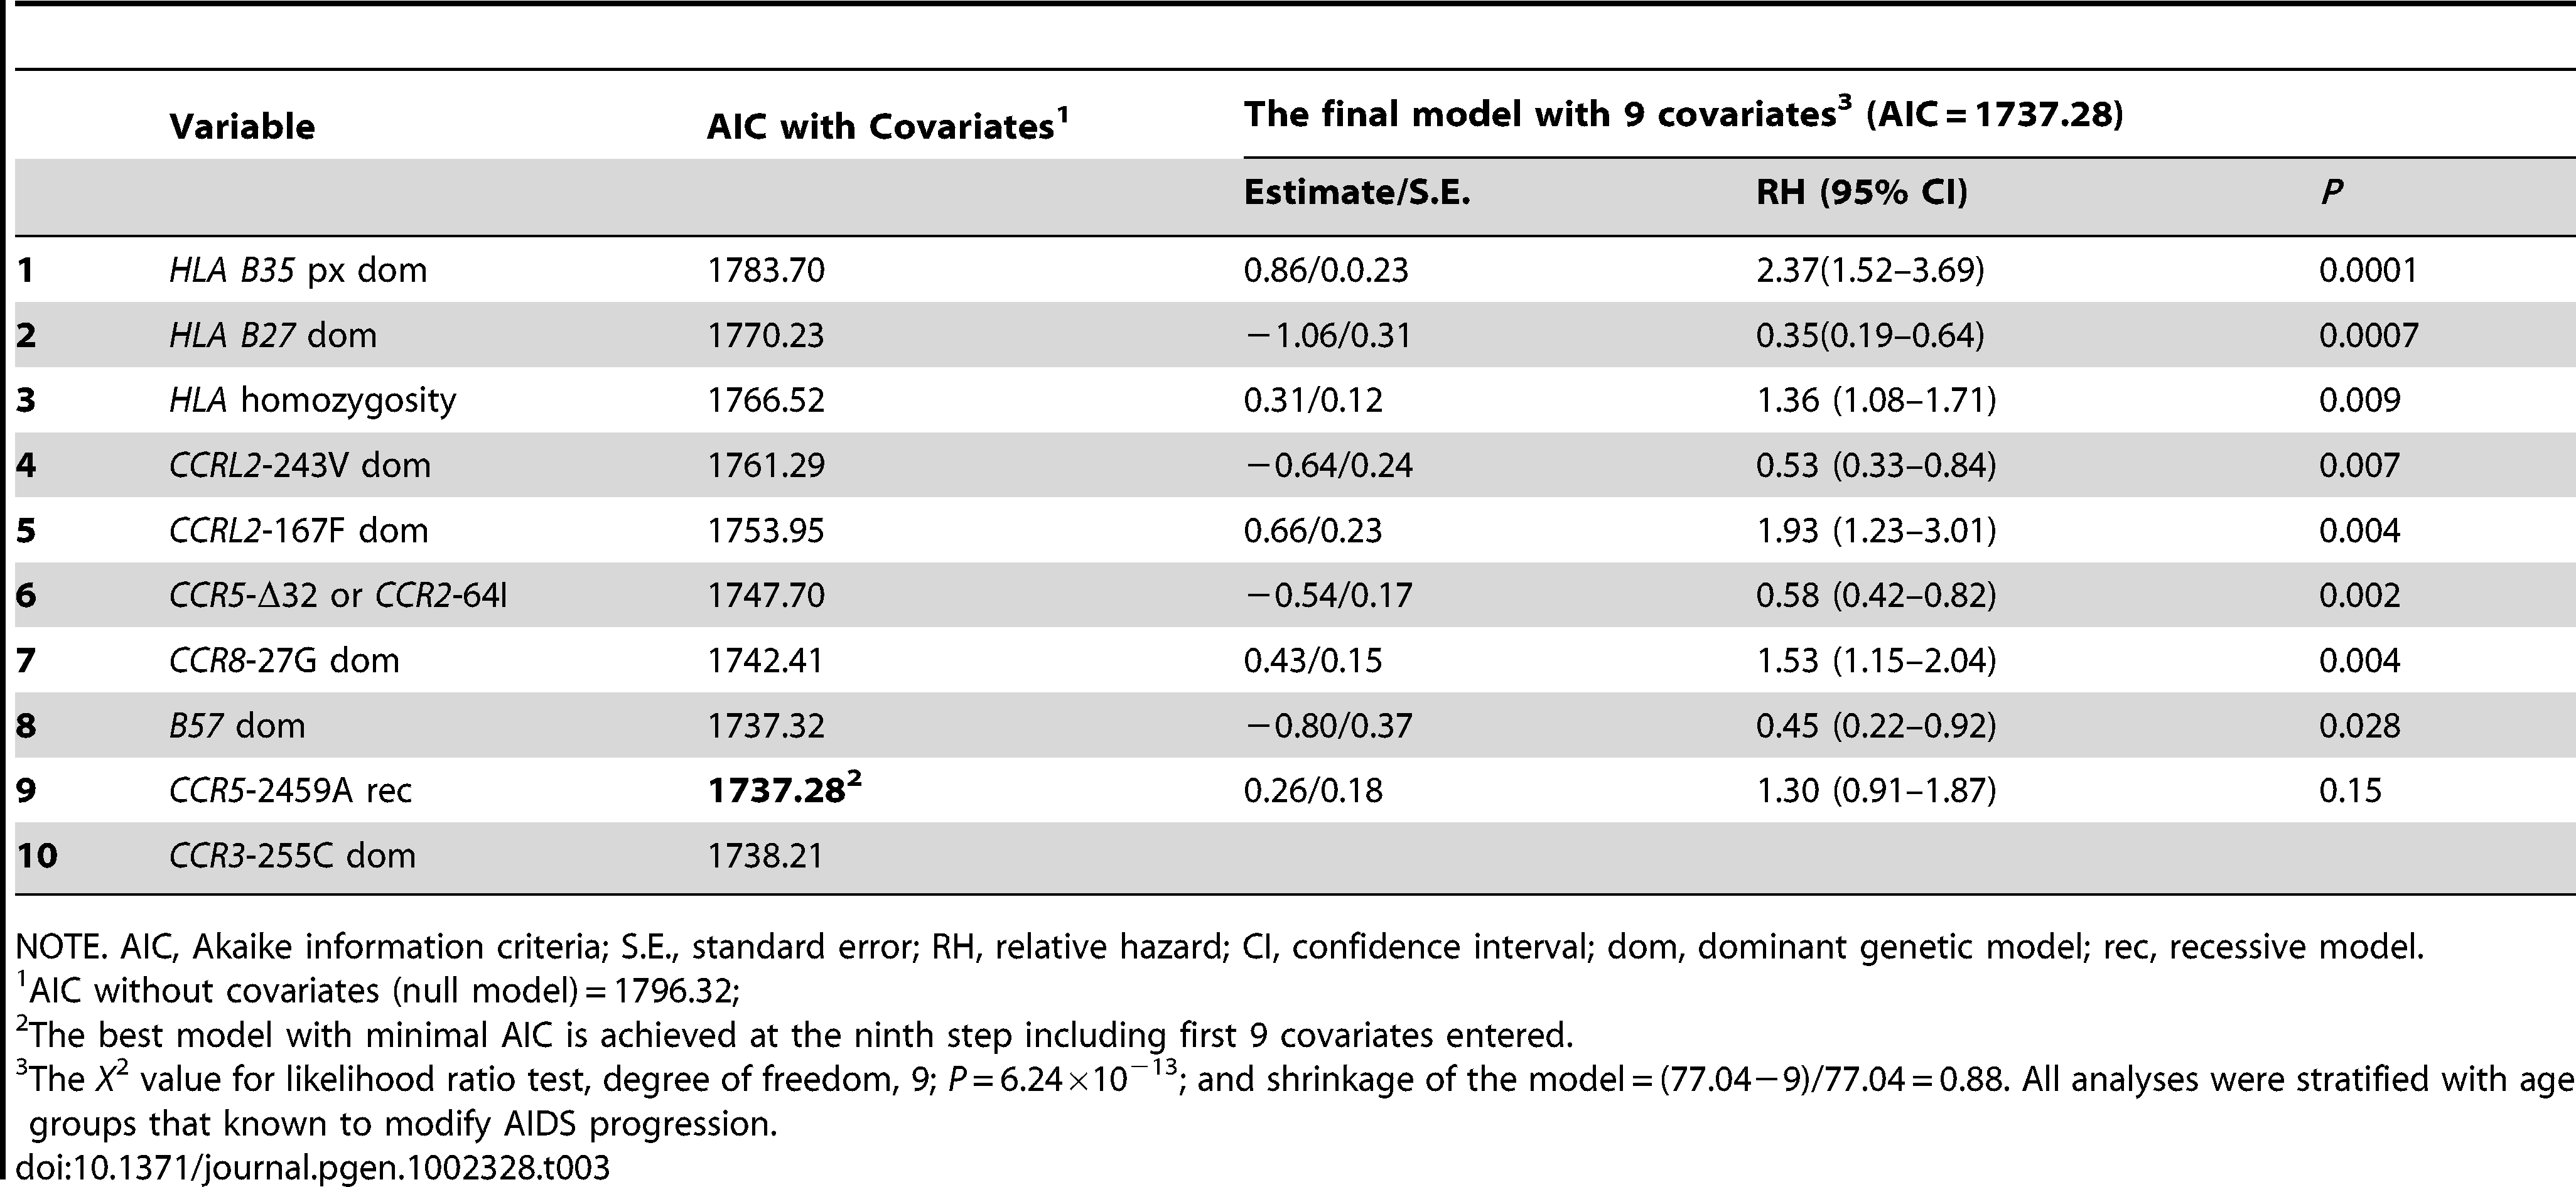 Sequential stepwise regression for Cox PH model selection and maximum likelihood estimates of genetic covariates associated with AIDS progression.